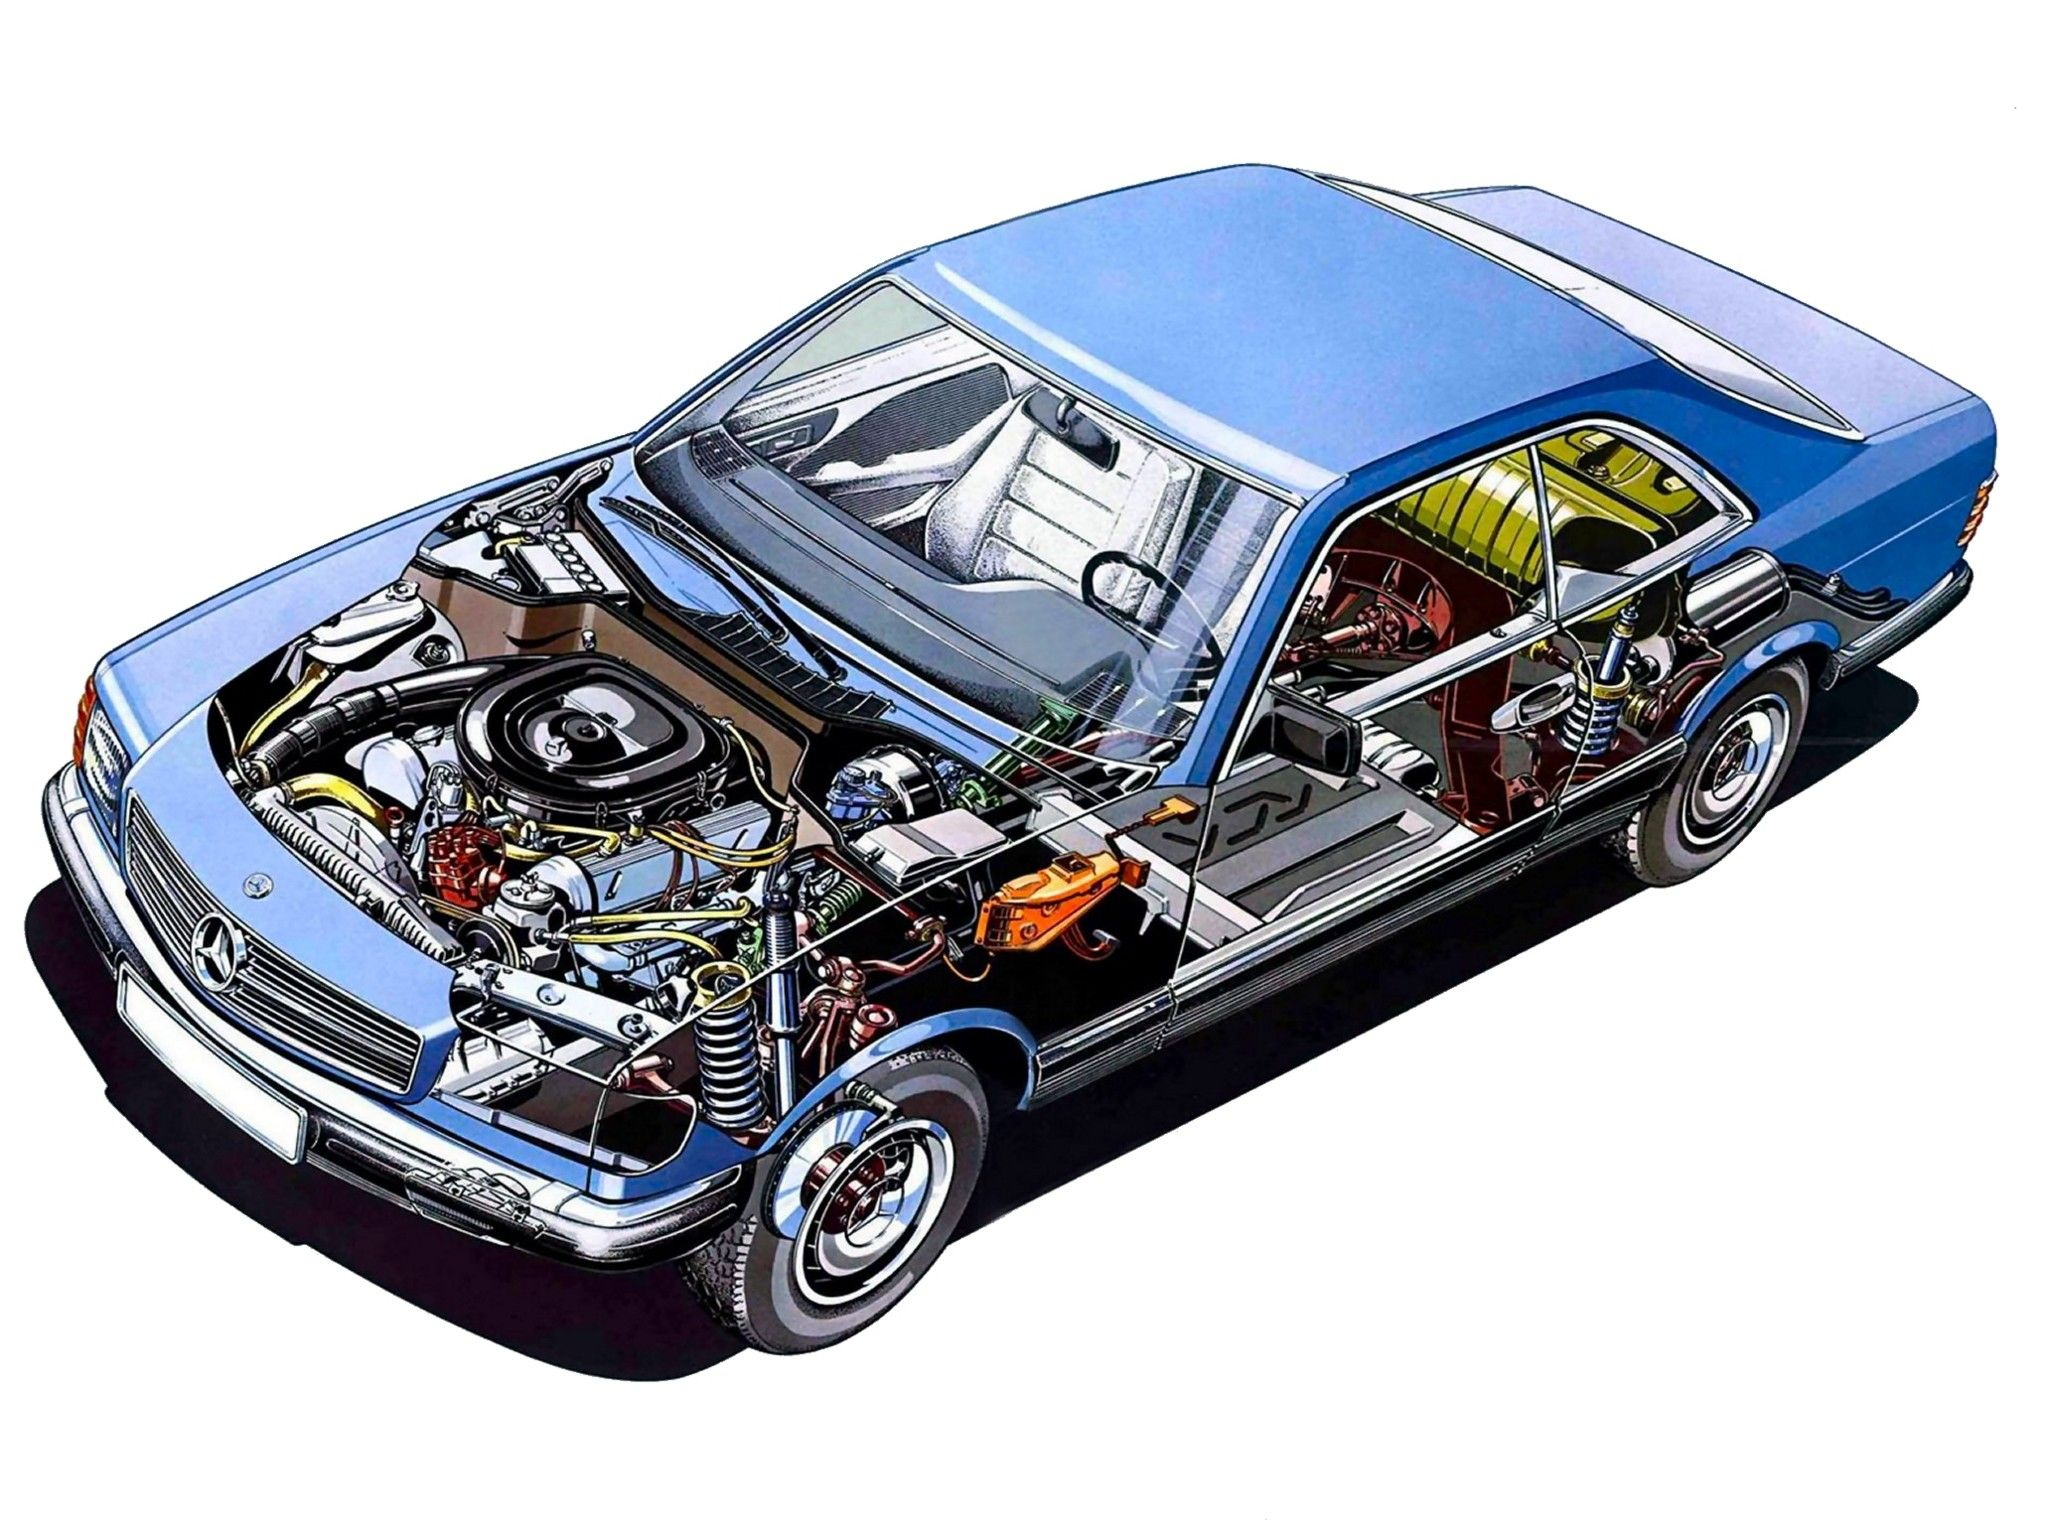 Mercedes benz 280 ge swb w460 1979 01 1990 pictures to pin - 1981 1985 Mercedes Benz S Klasse Coupe C126 Illustrator Unknown